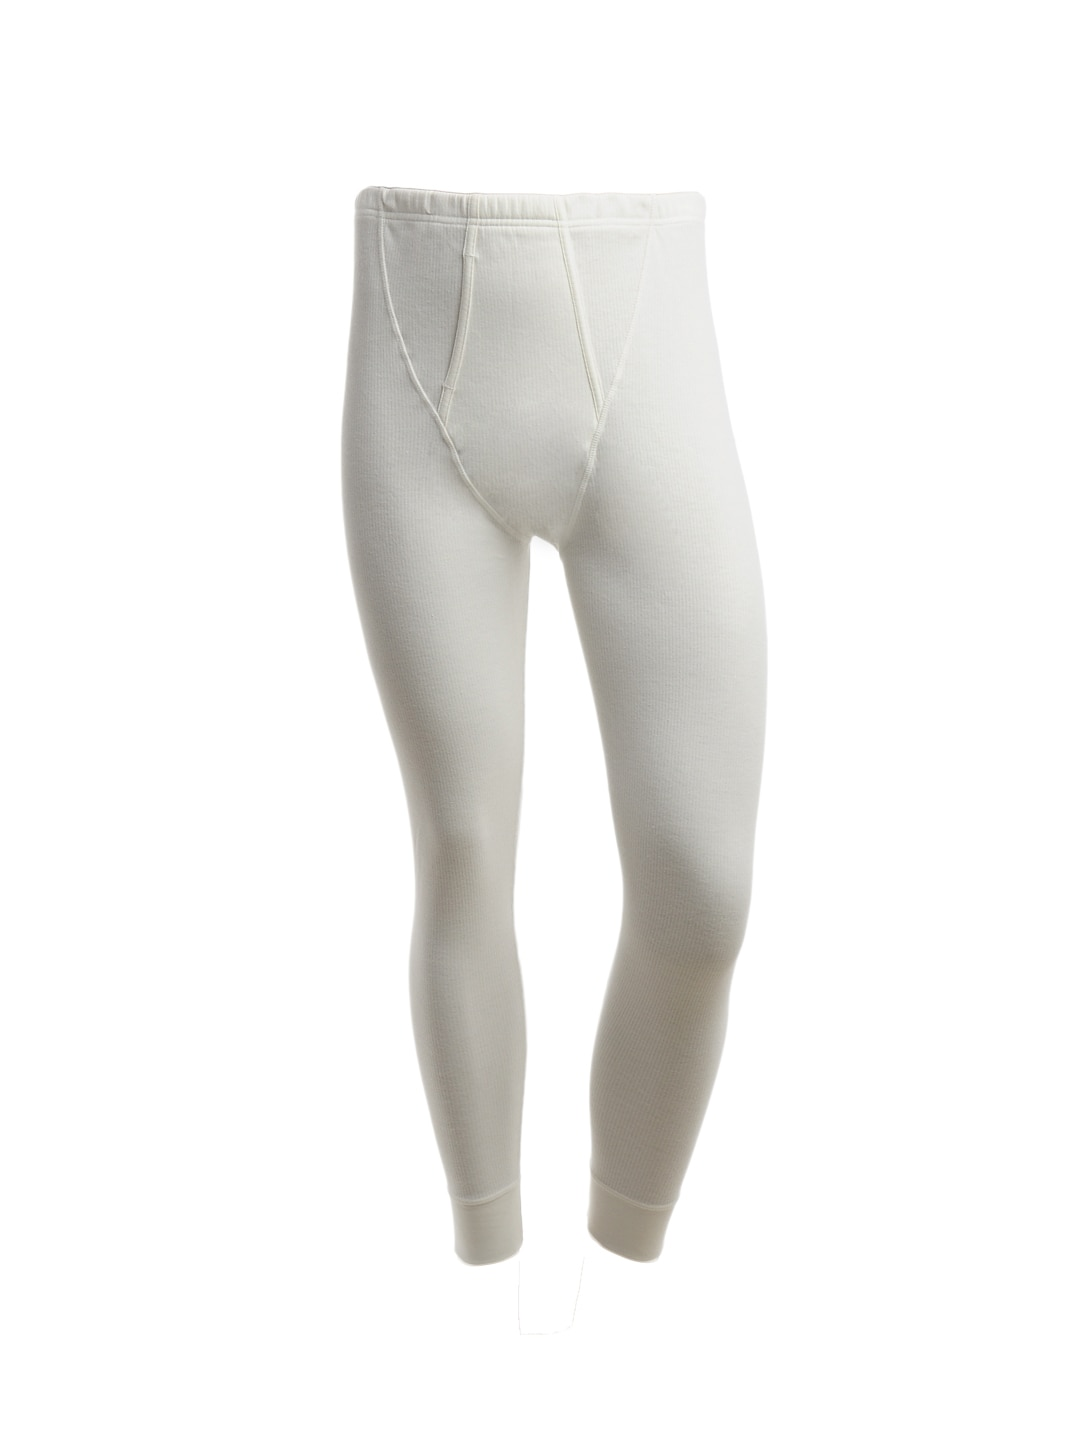 Jockey Men Cream Thermal Pants